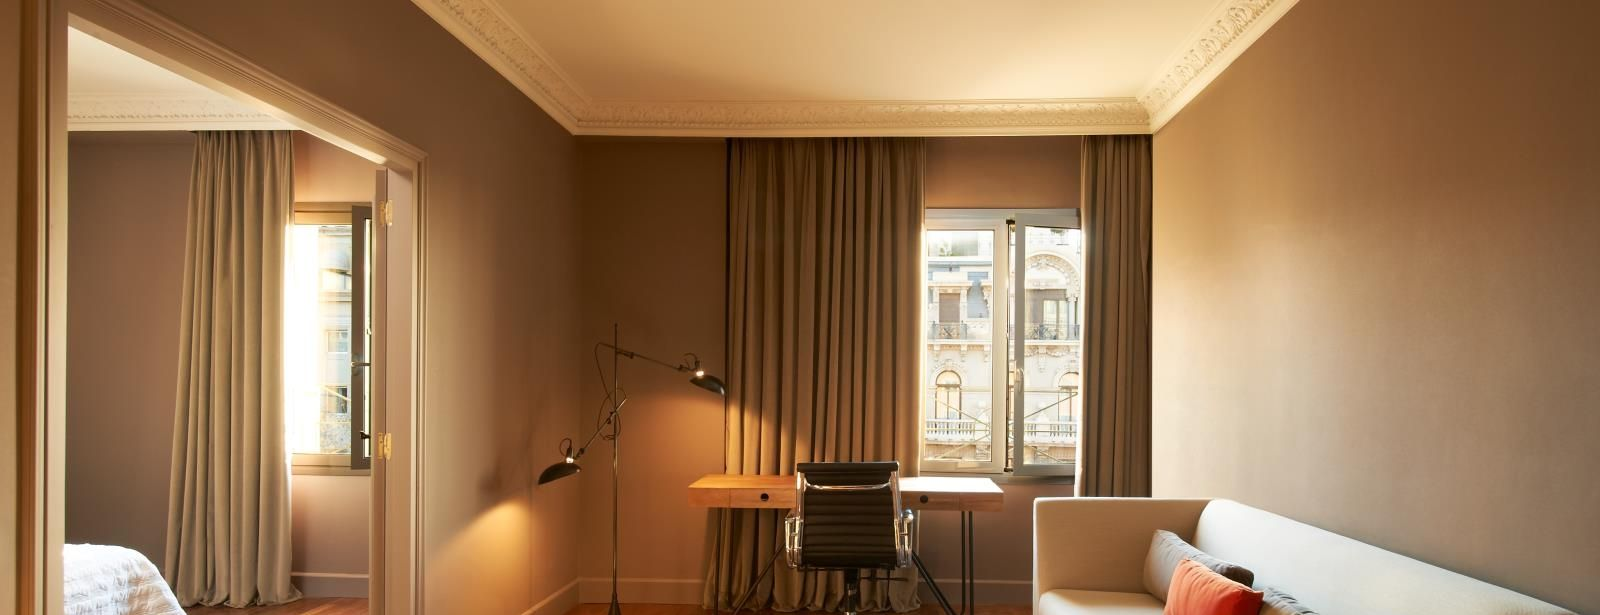 Suite Familiar at Le Méridien Barcelona